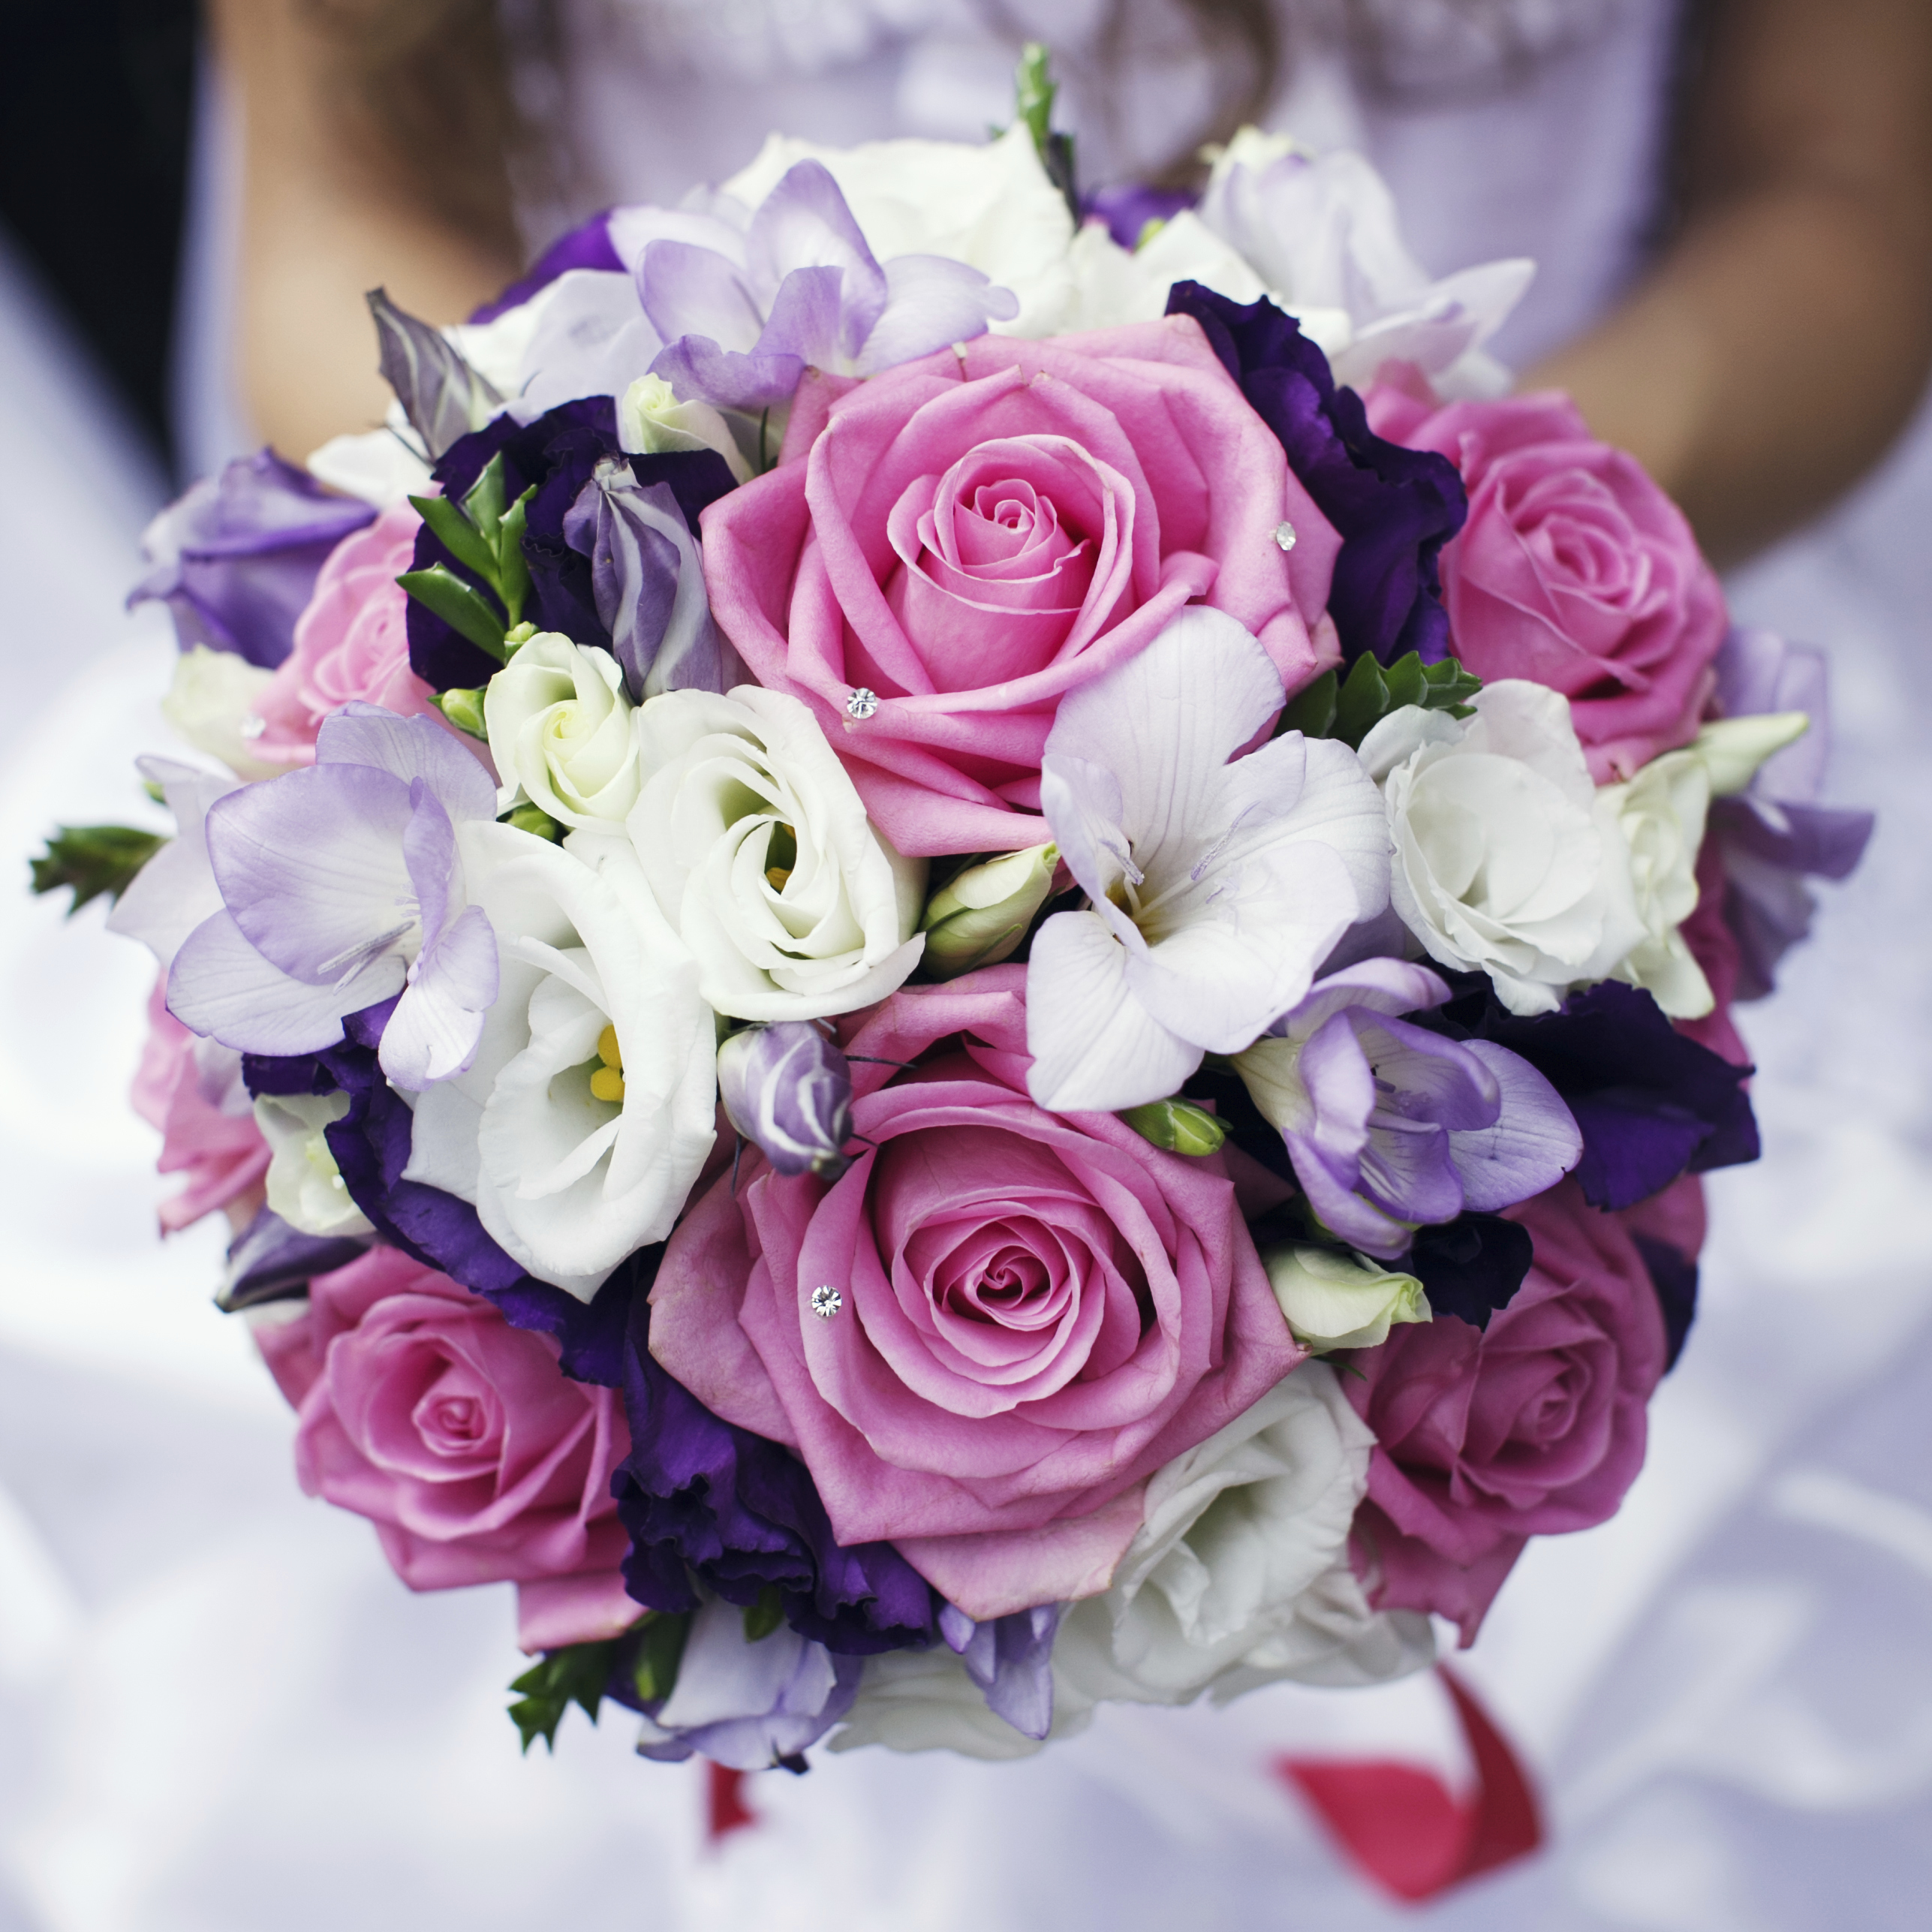 Wedding bouquets articles easy weddings 168778800 izmirmasajfo